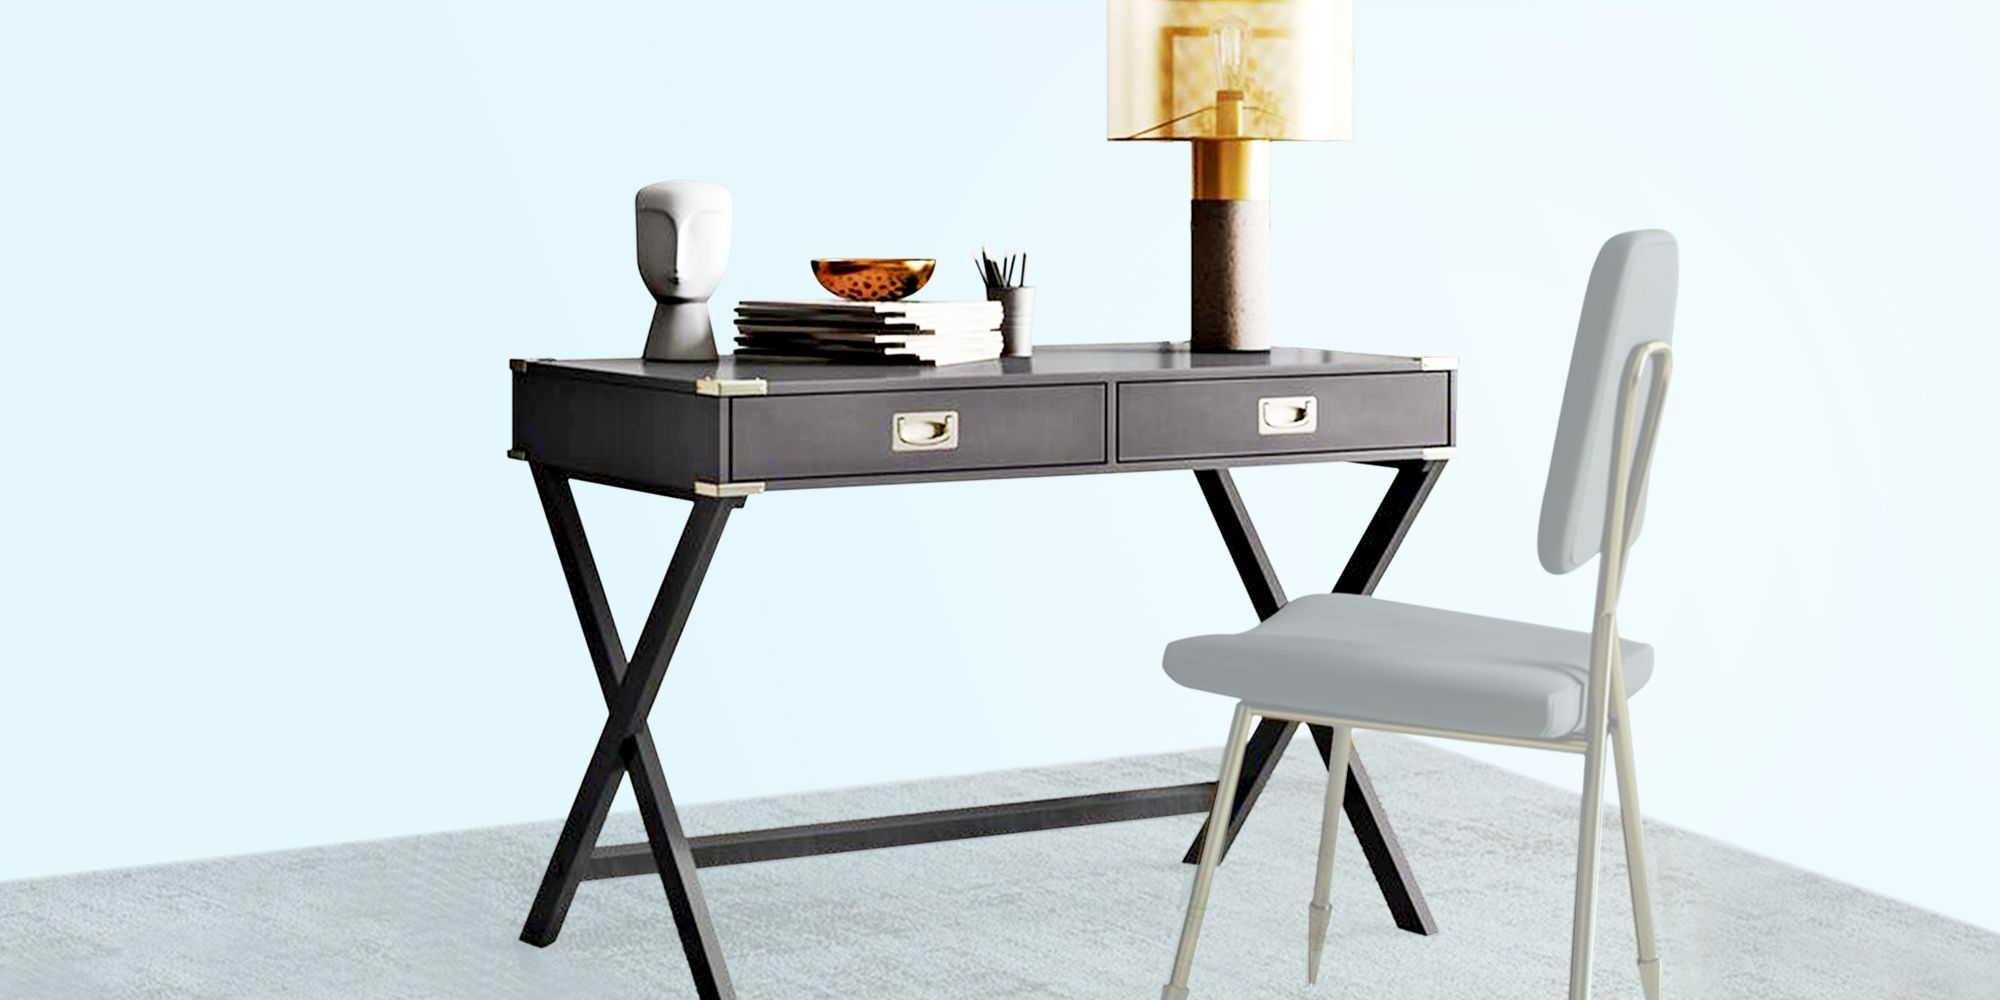 The Coolest Furniture Picks From Wayfair's Massive Sale Selection